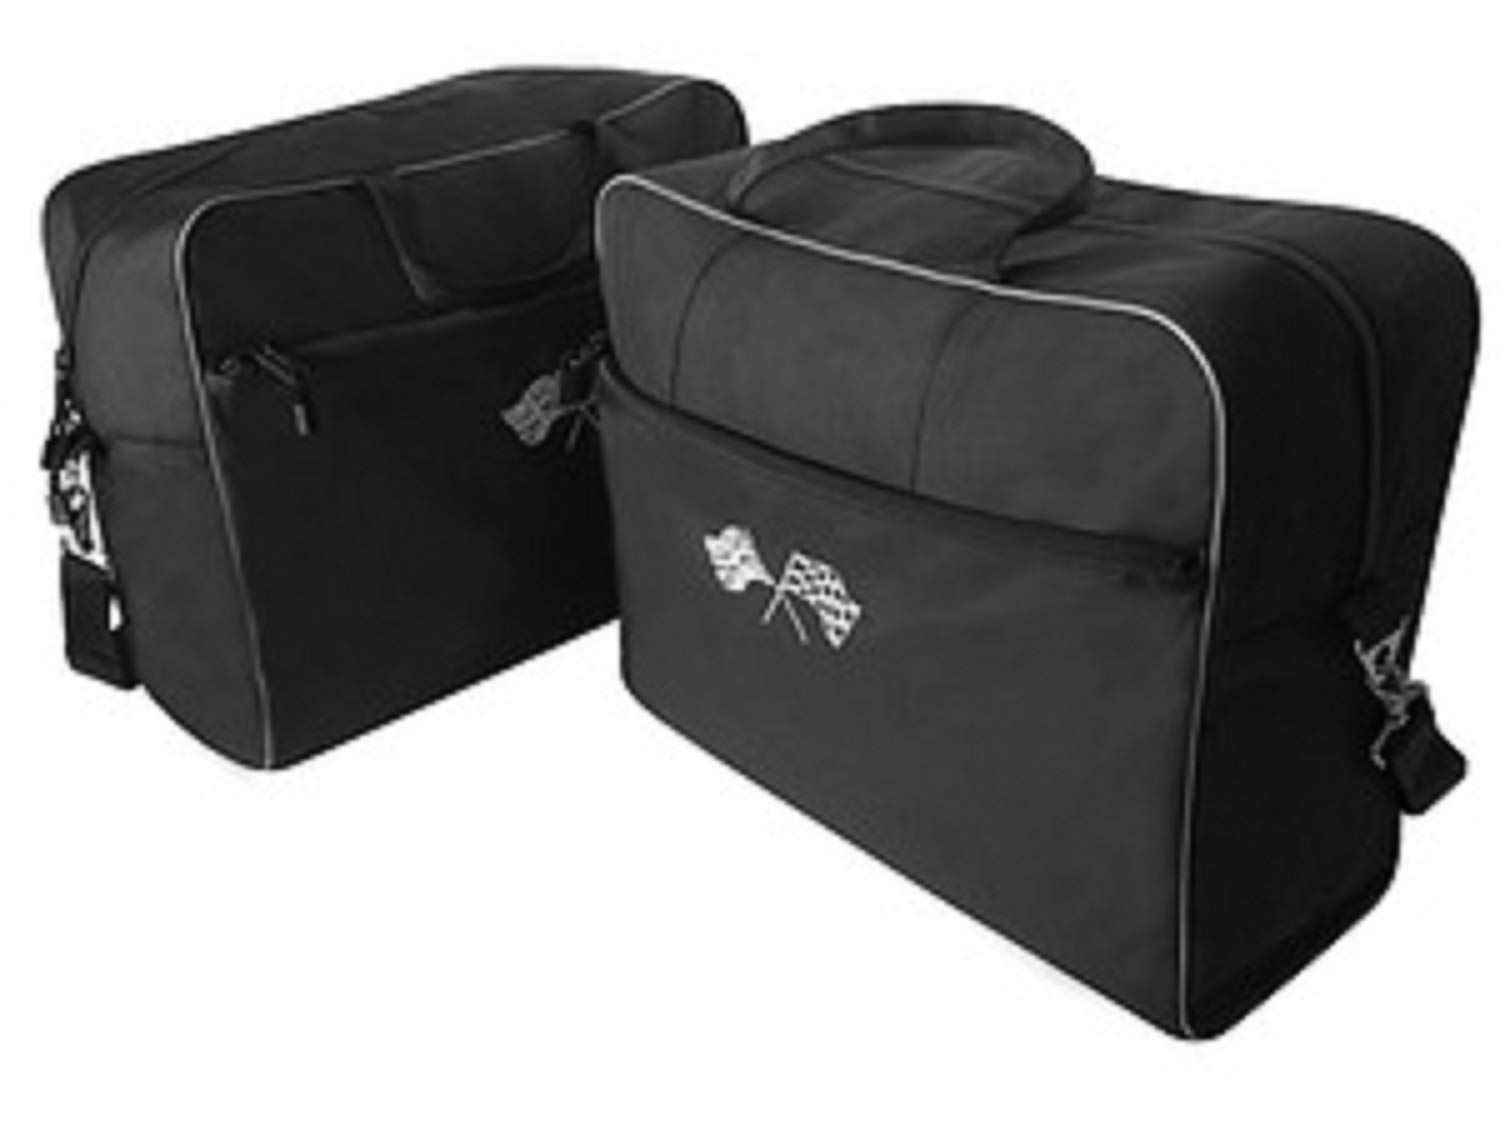 Amazon.com: MINI Cooper Convertible Luggage Bags (R52 R56 2004-present): Automotive